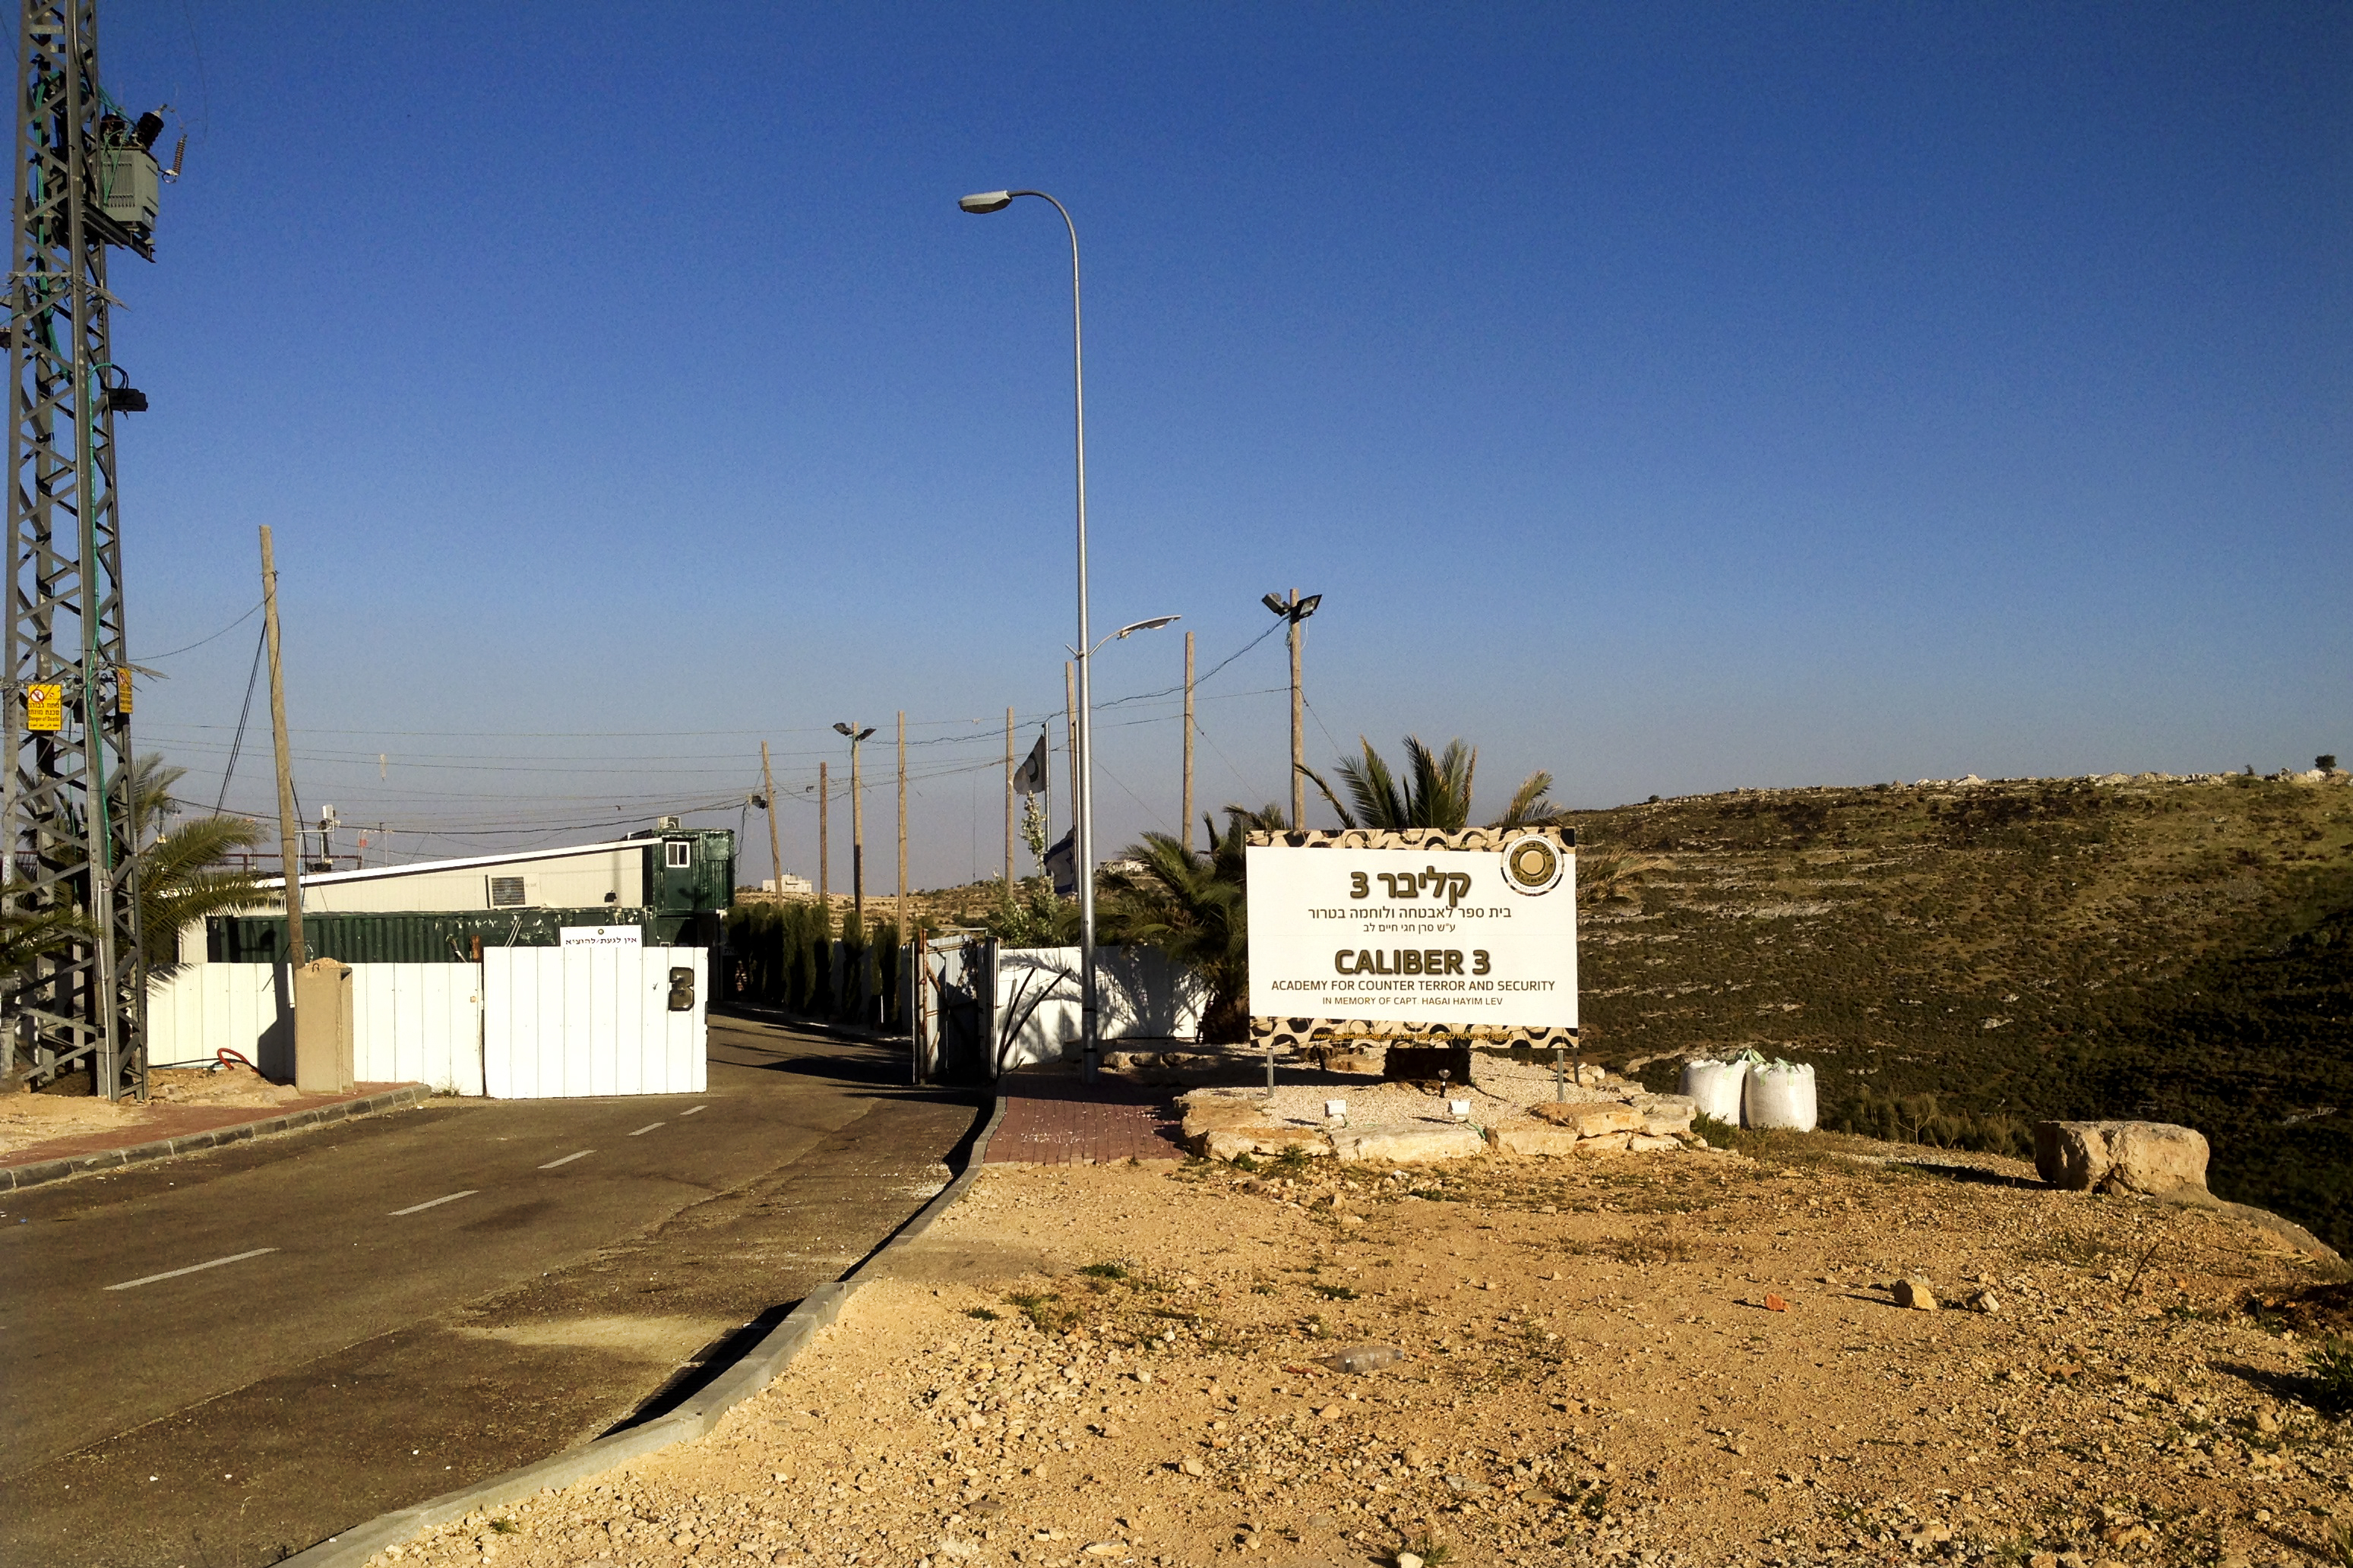 The training facility sits on a hilltop in the Gush Etzion region of Israeli settlements in the West Bank.